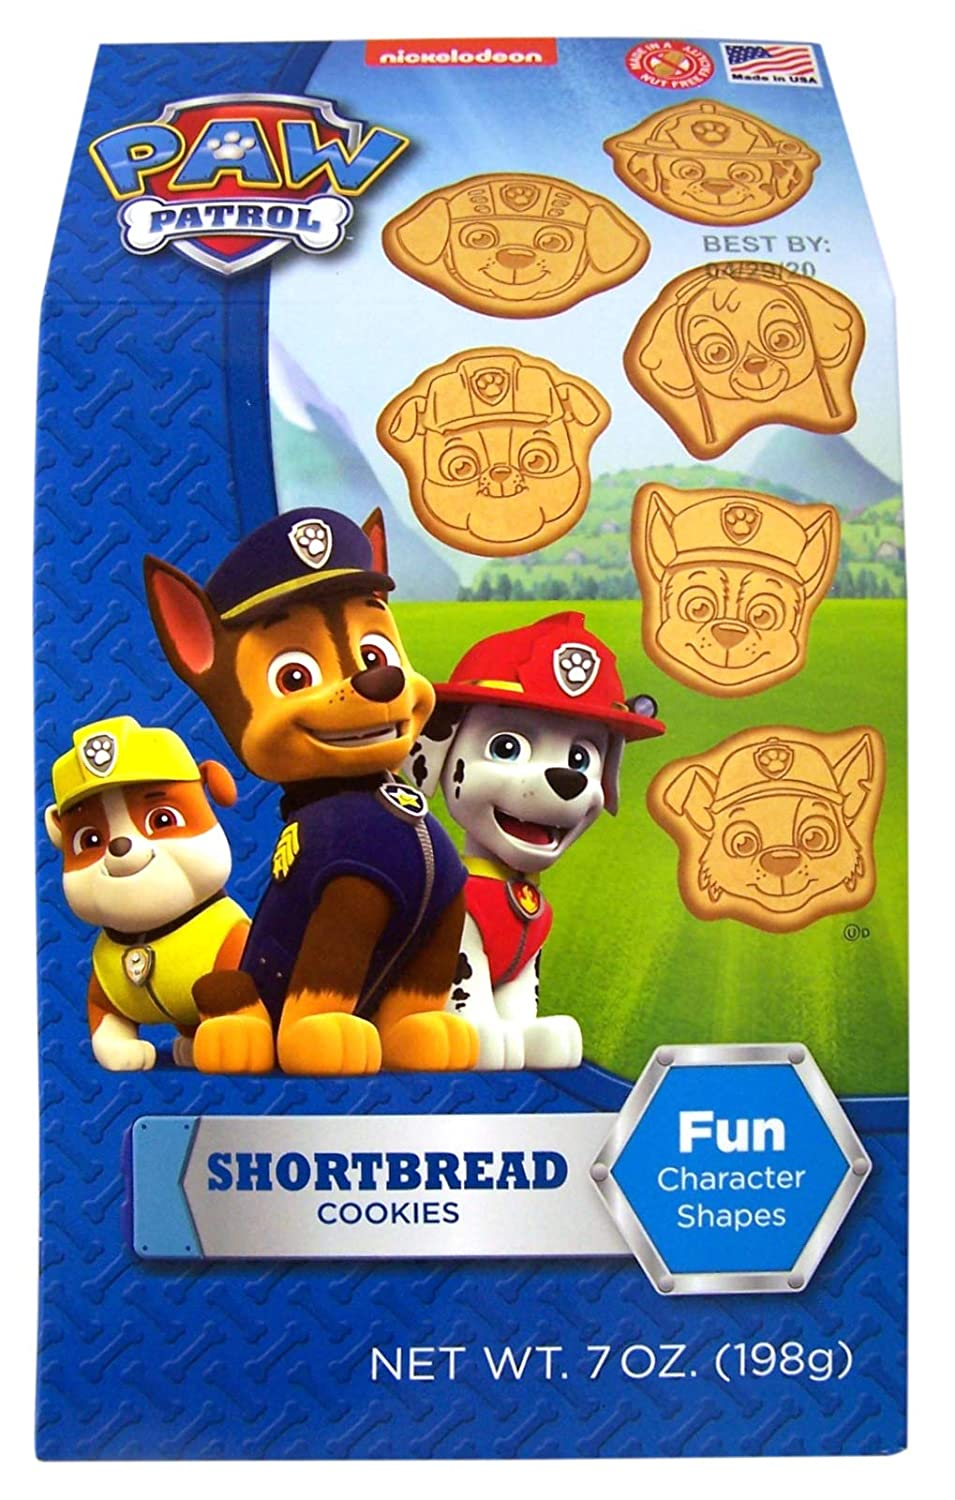 Paw Patrol Character Shaped Shortbread Cookies 7 oz Box